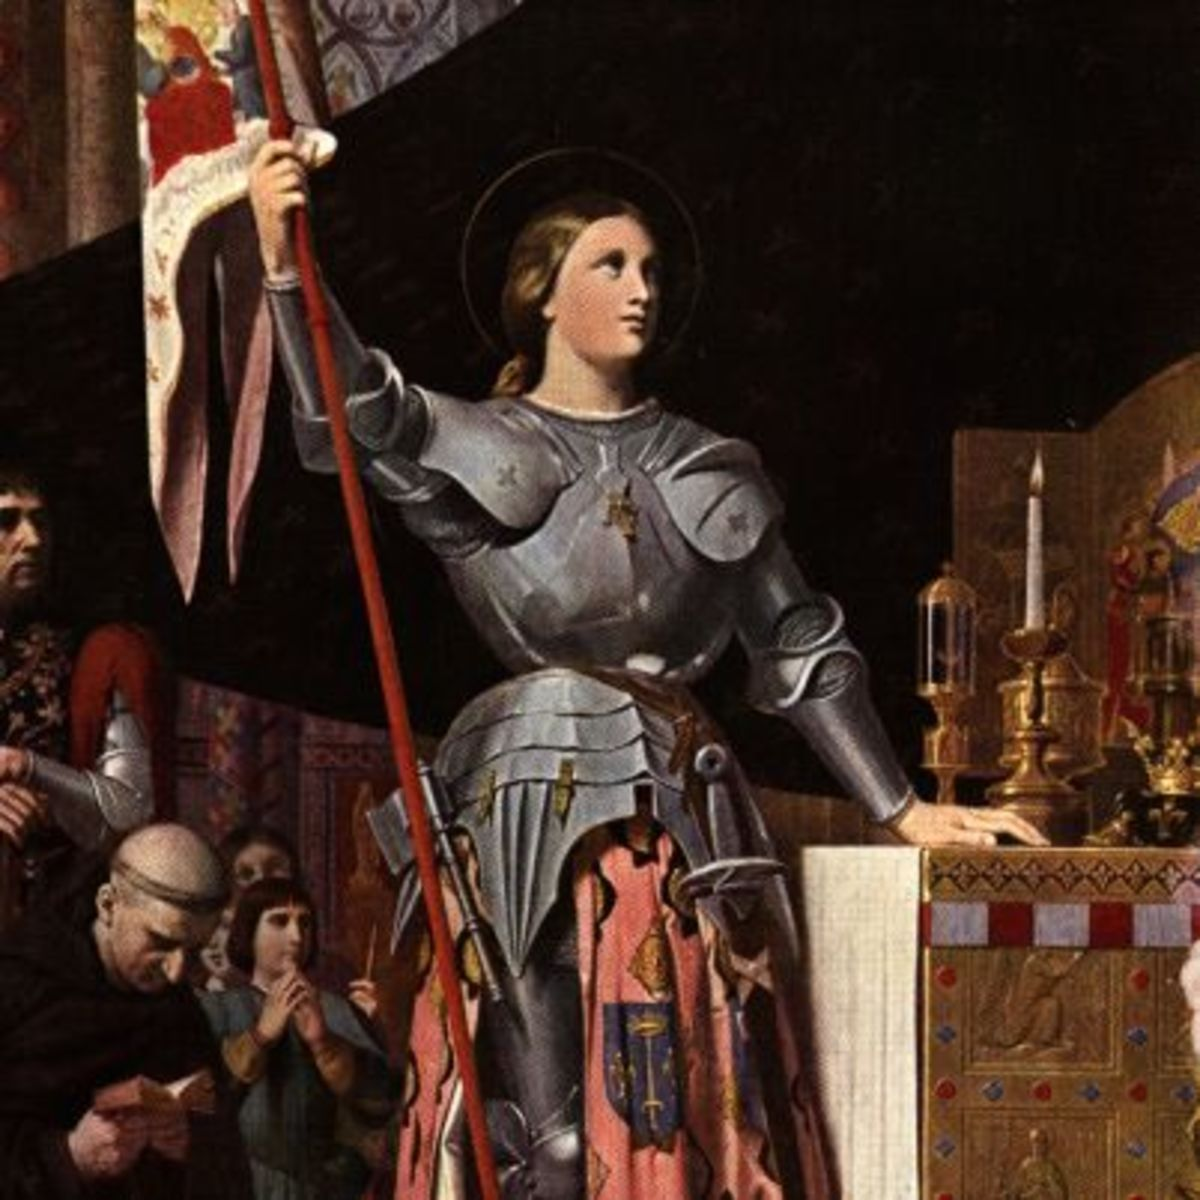 Joan of Arc - Death, Facts & Accomplishments - Biography